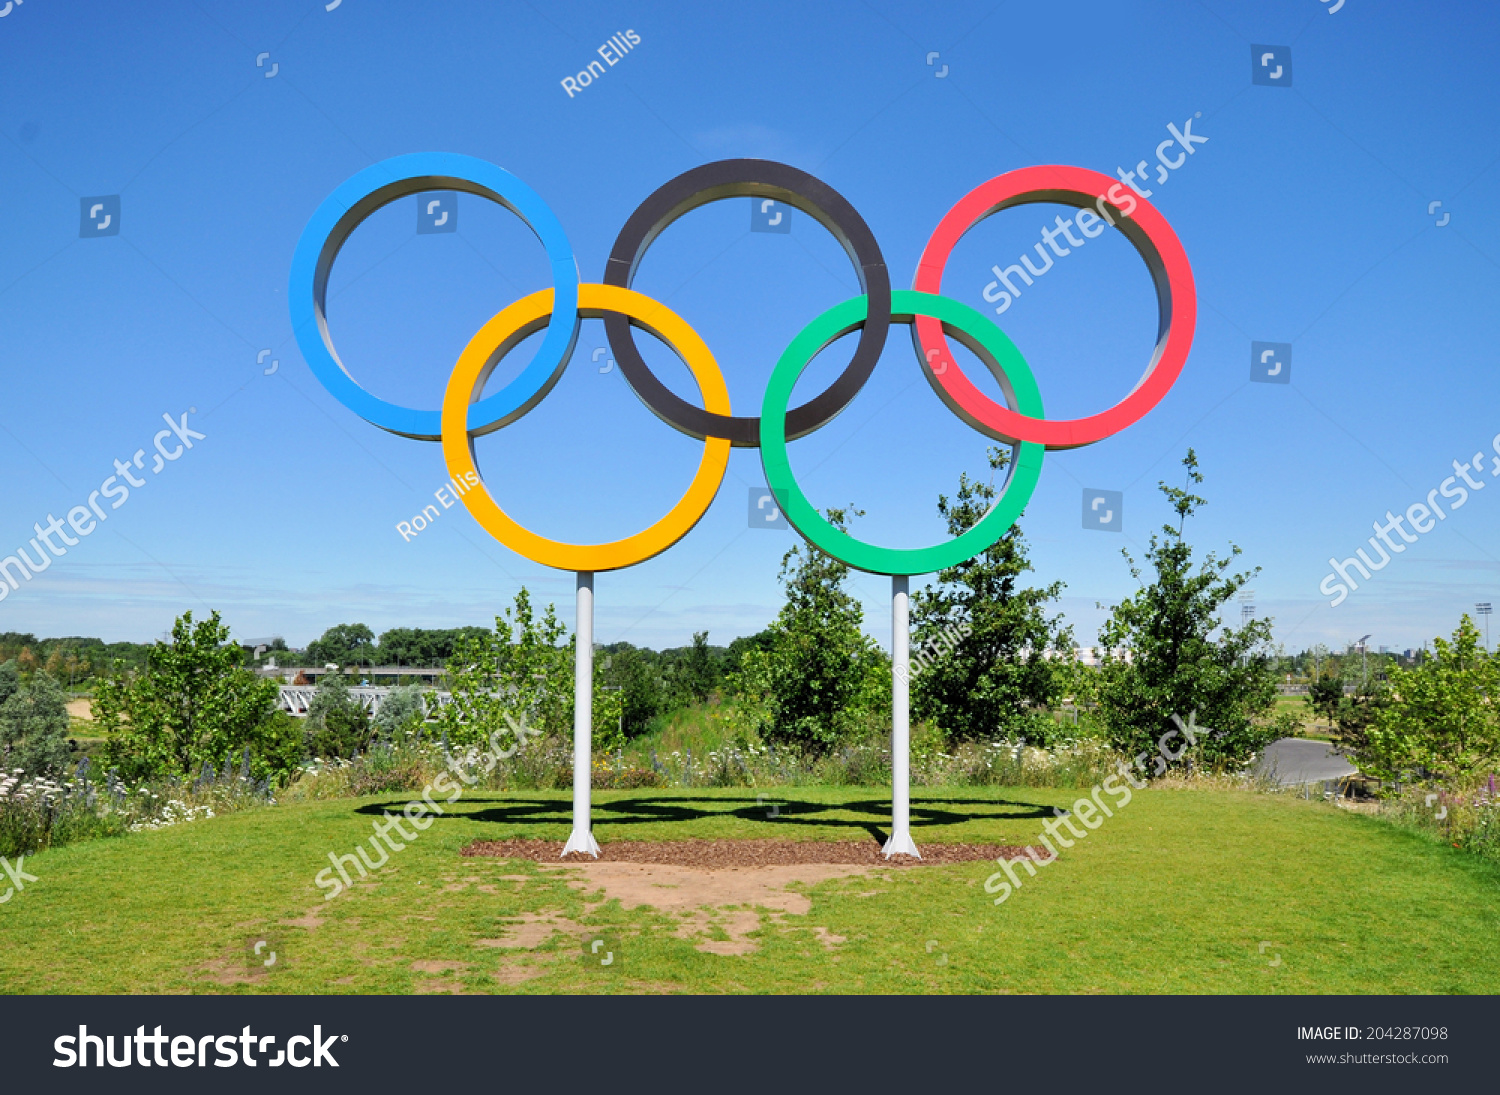 London July 3 Olympic Games Symbol Stock Photo Edit Now 204287098